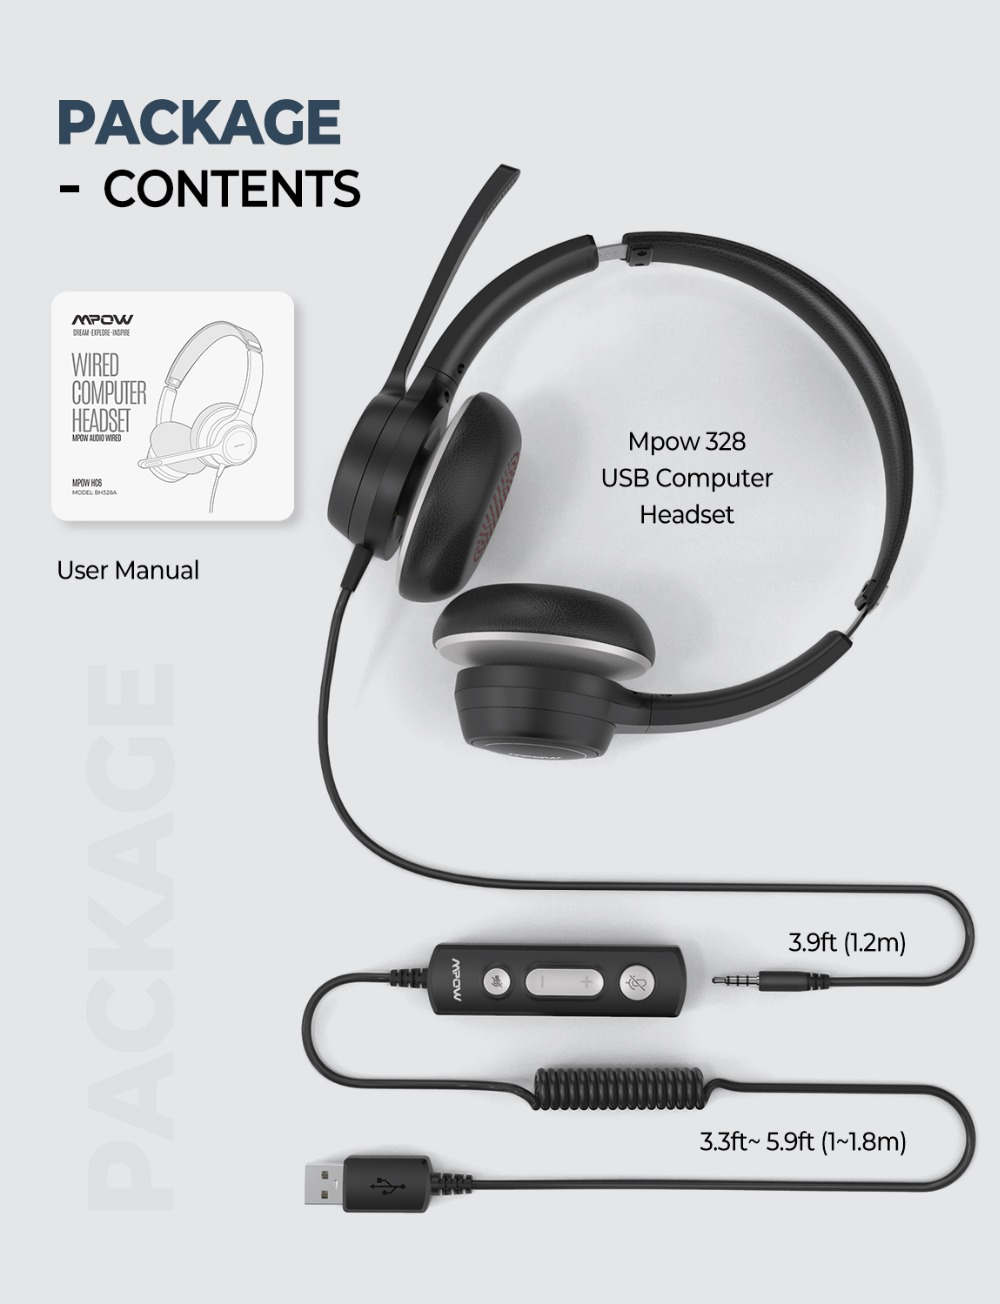 Mpow 328 Wireless Headphones USB 3.5mm Computer Headset With Microphone Noise Reduction Sound Card For PC Skype Call Center Mac (7)